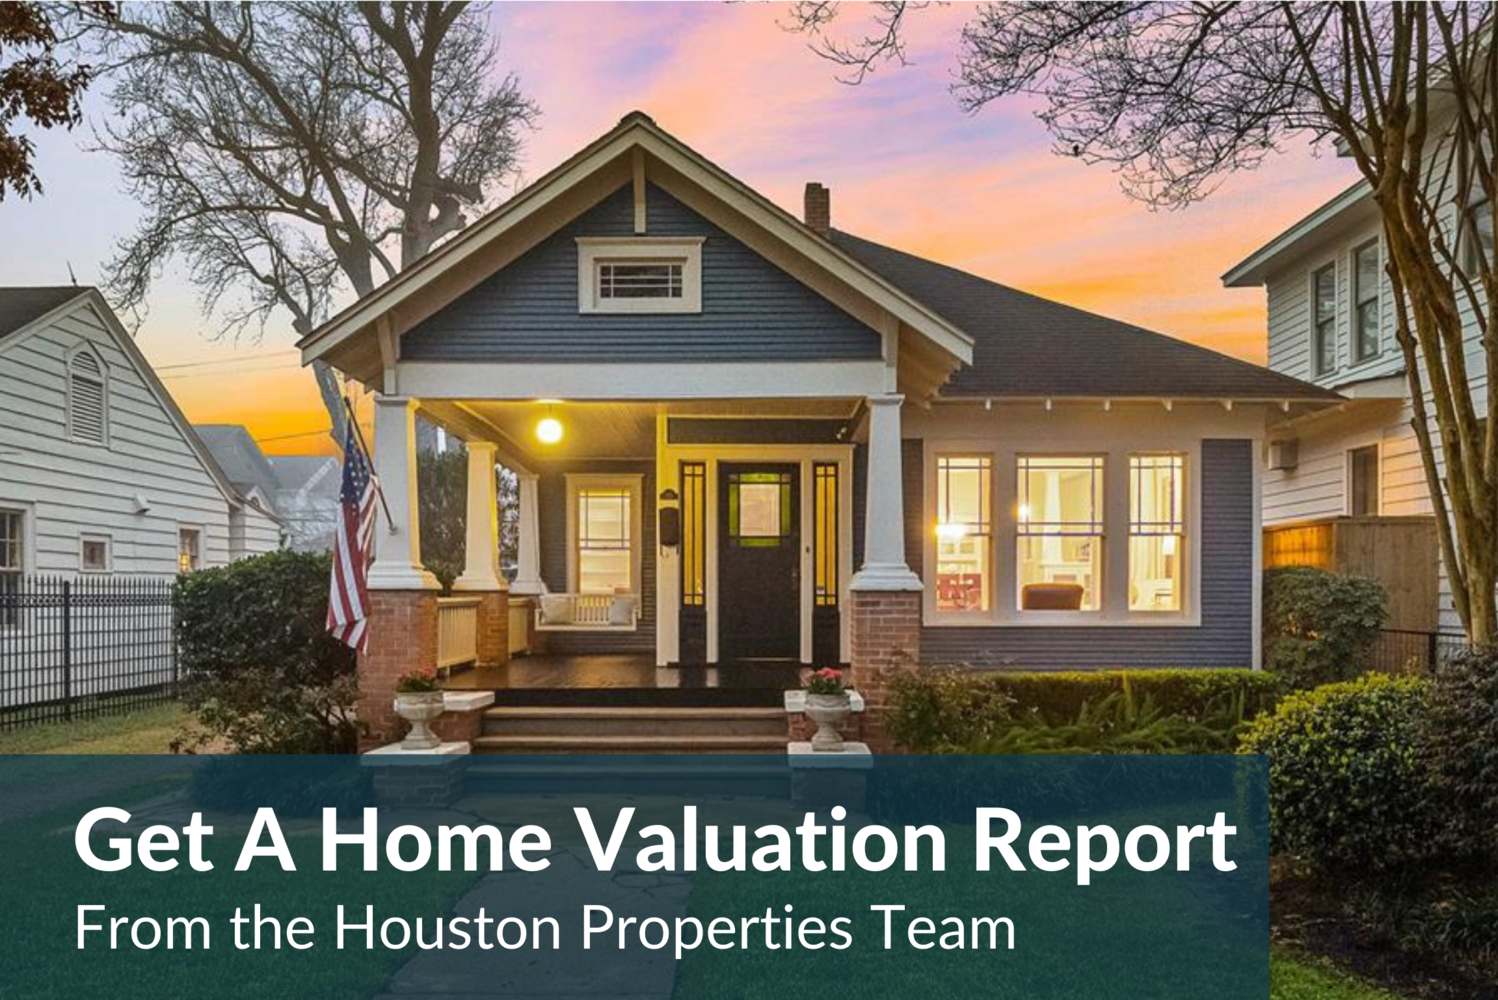 Sell Your Heights Home: Get A Free Valuation Report Now!